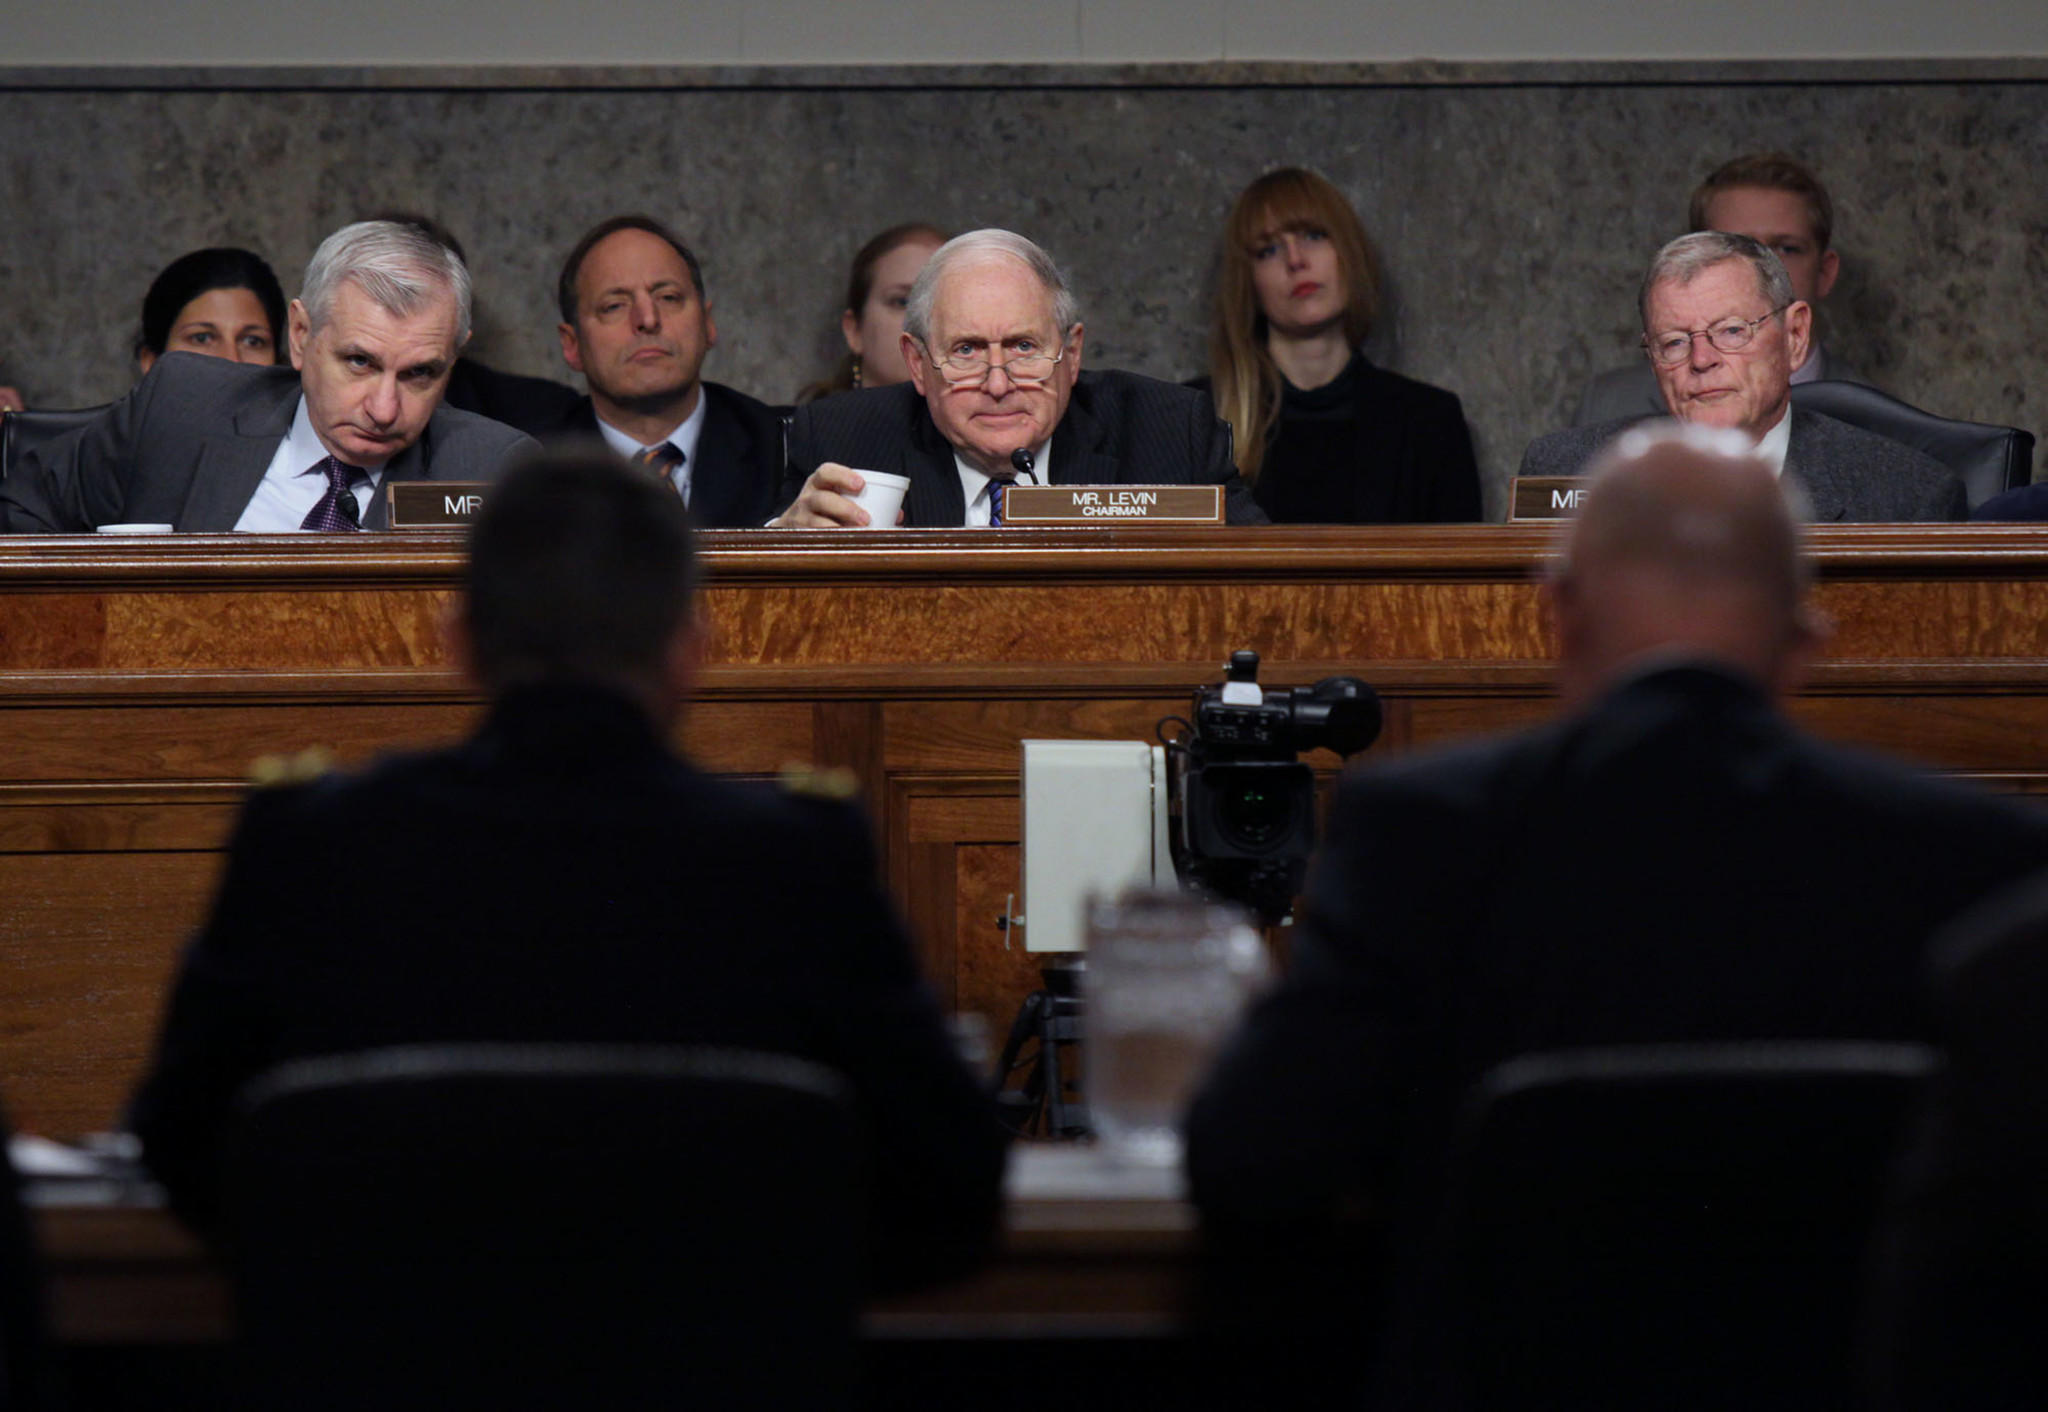 Sen. Carl Levin (D-Mich.), center, chairs a Senate Armed Services Committee meeting Tuesday. He tried without luck last week to broaden congressional oversight of lethal overseas drone strikes.